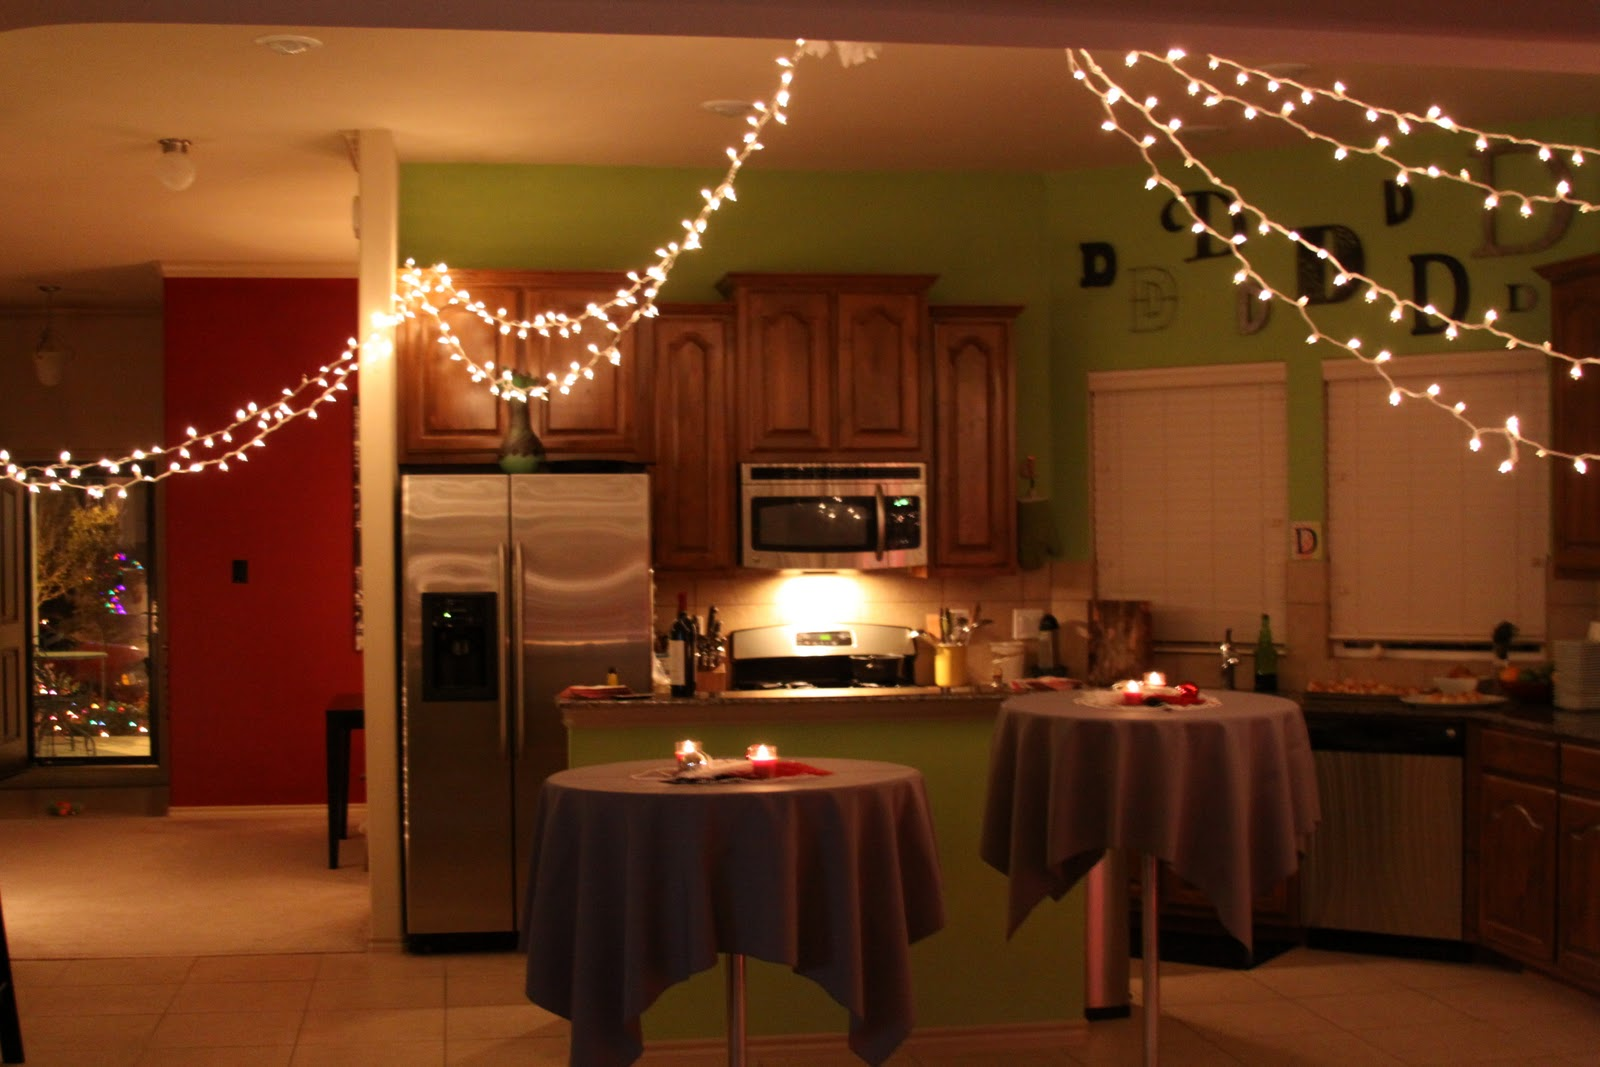 Battery Operated Clip Fairy Lights & Retro Kitchen Lighting Transformation - Modern Light Fixtures for ...